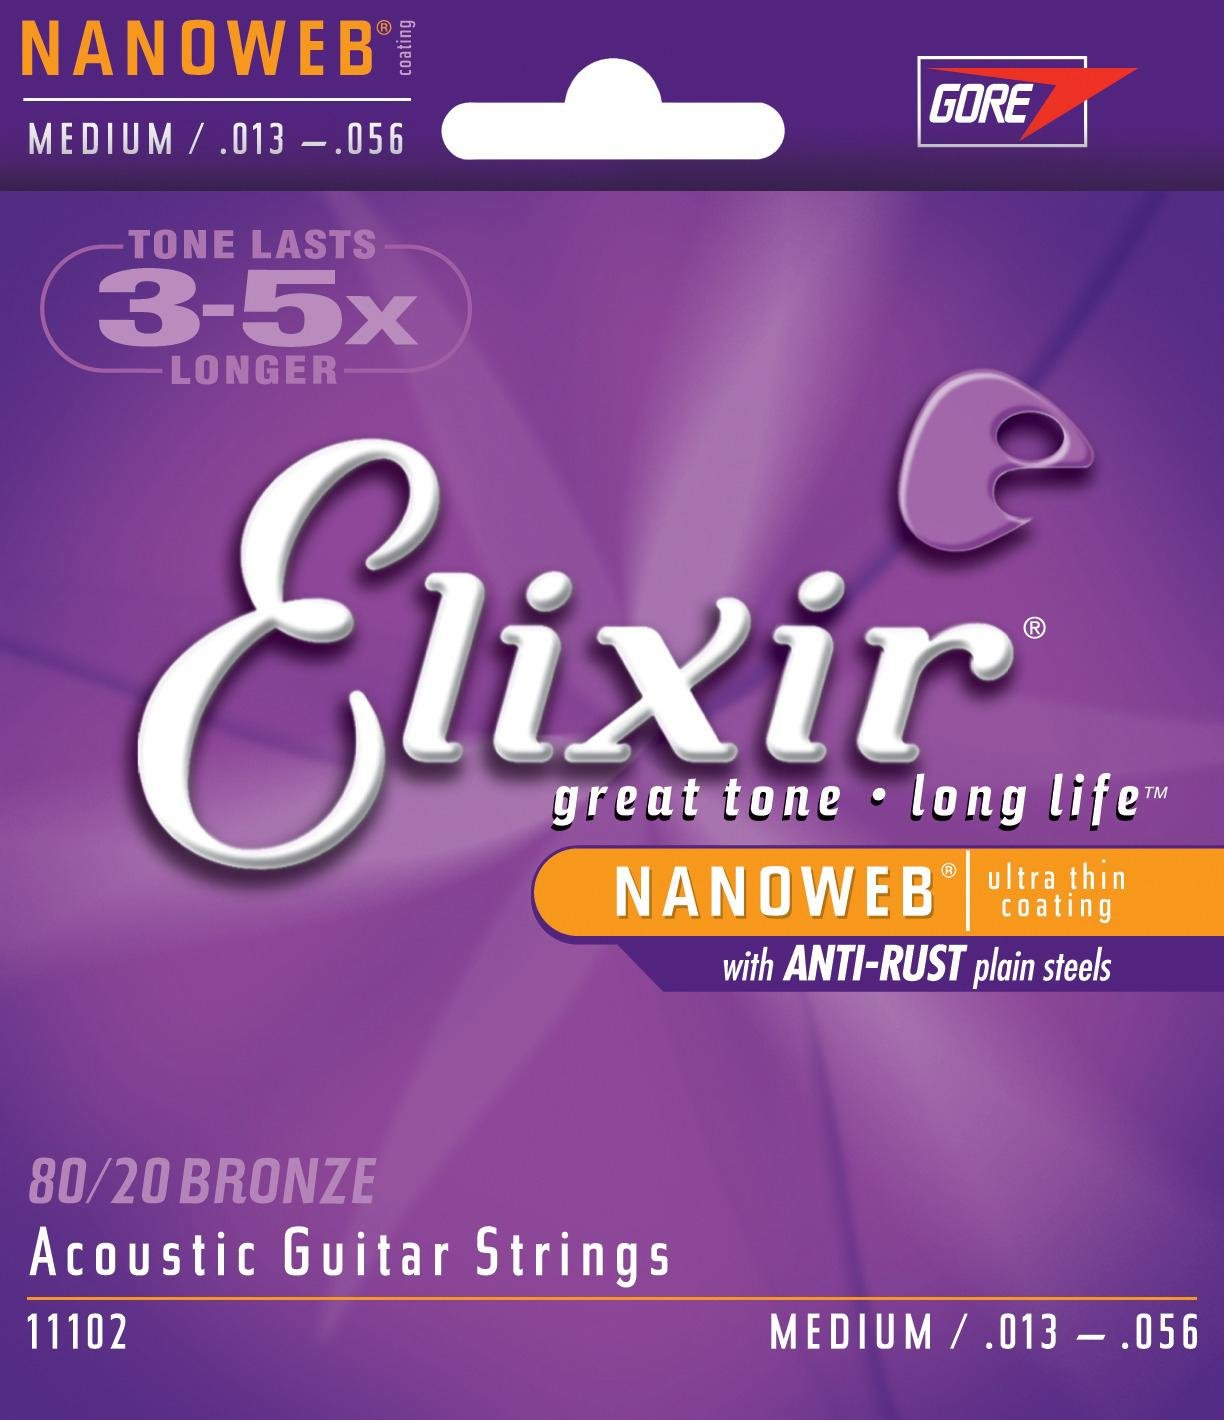 ELIXIR Acoustic Guitar Strings NANOWEB Coating - Medium .013 - .056